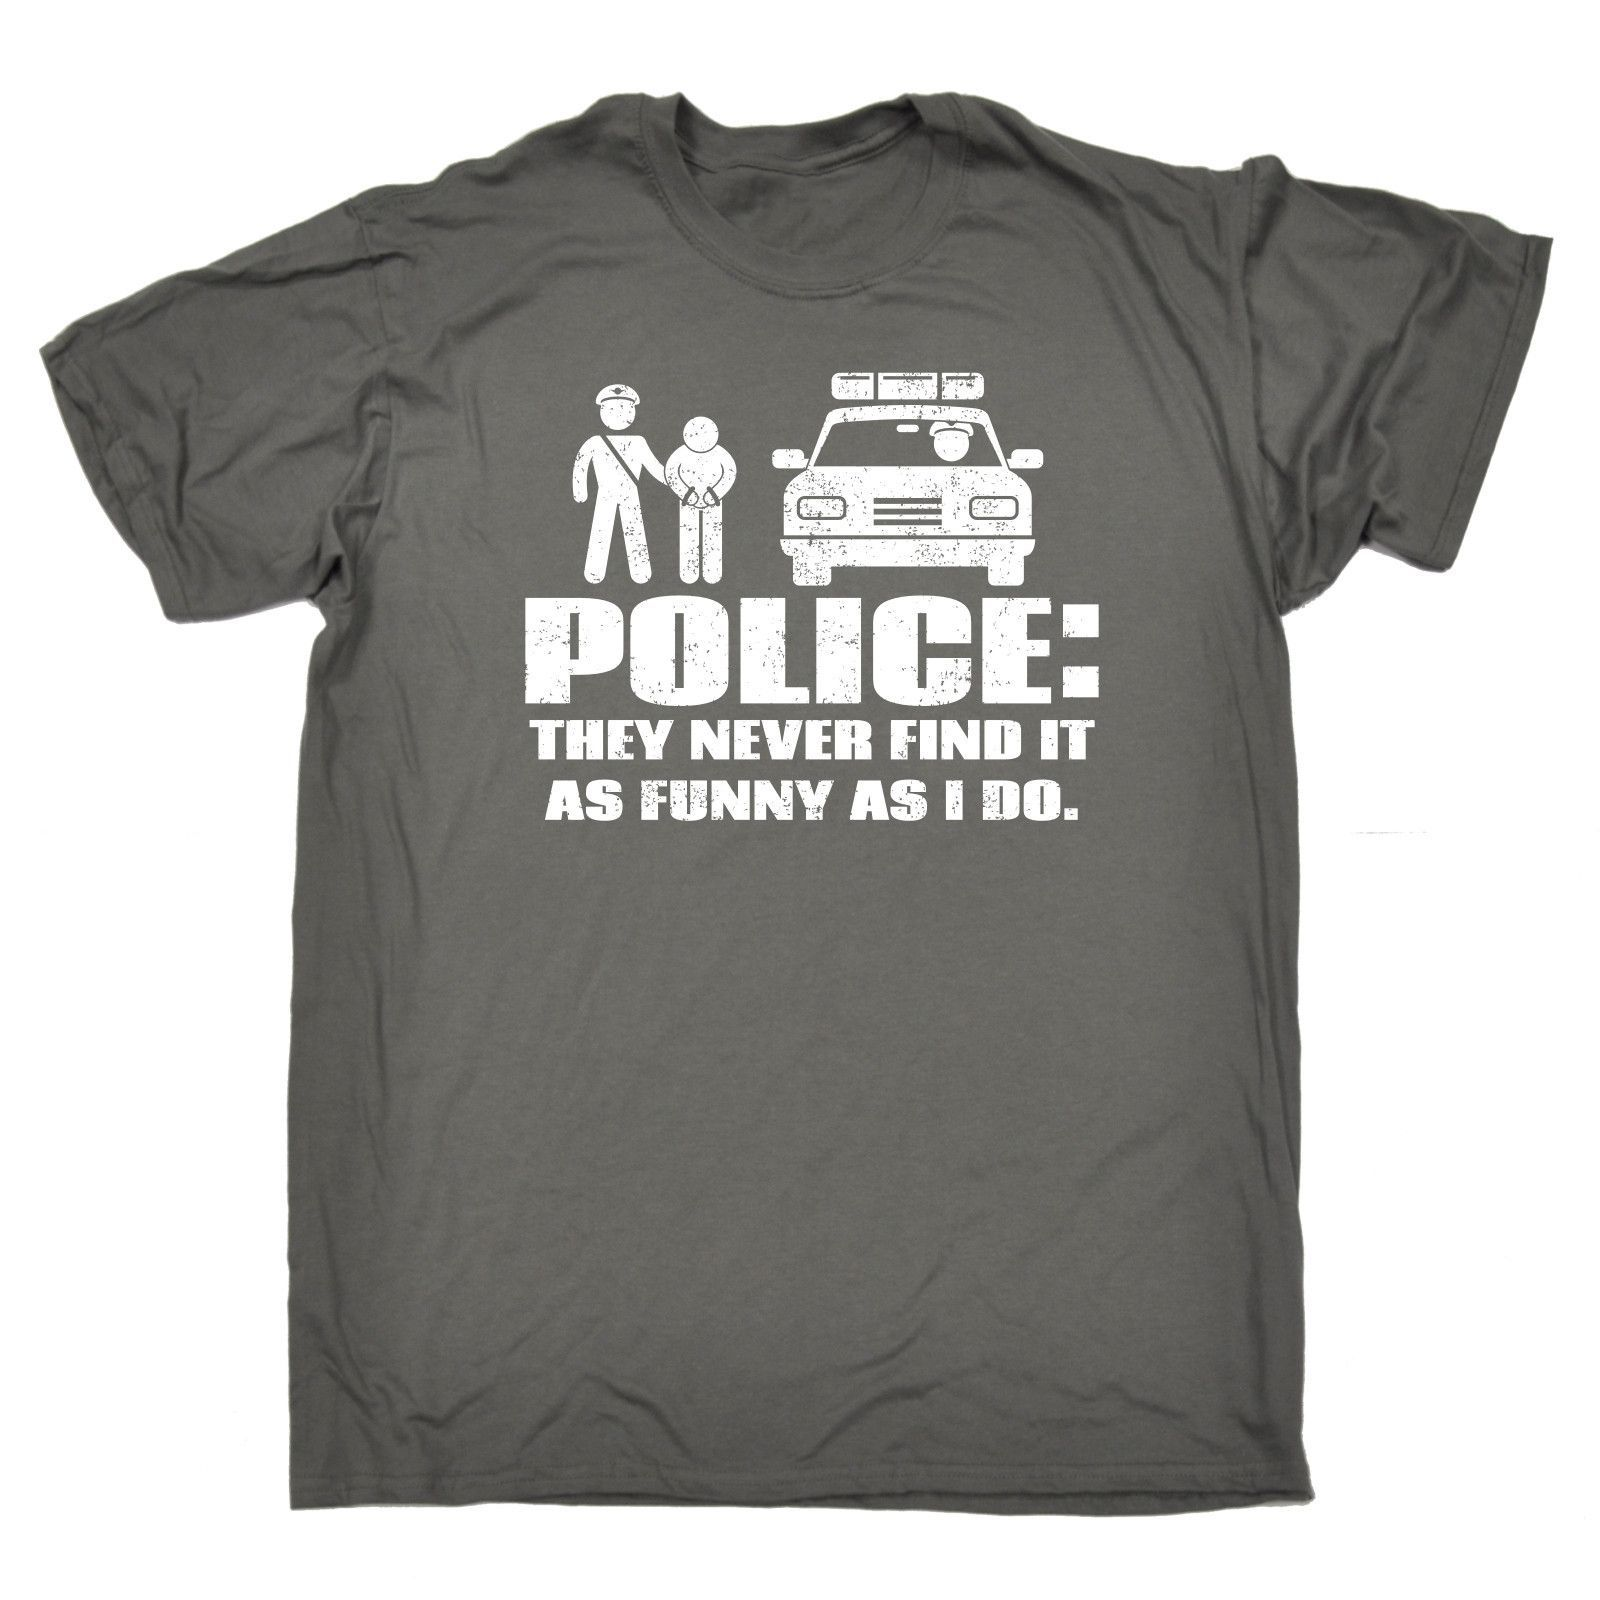 123t USA Men's Police They Never Find It As Funny As I Do Funny T-Shirt